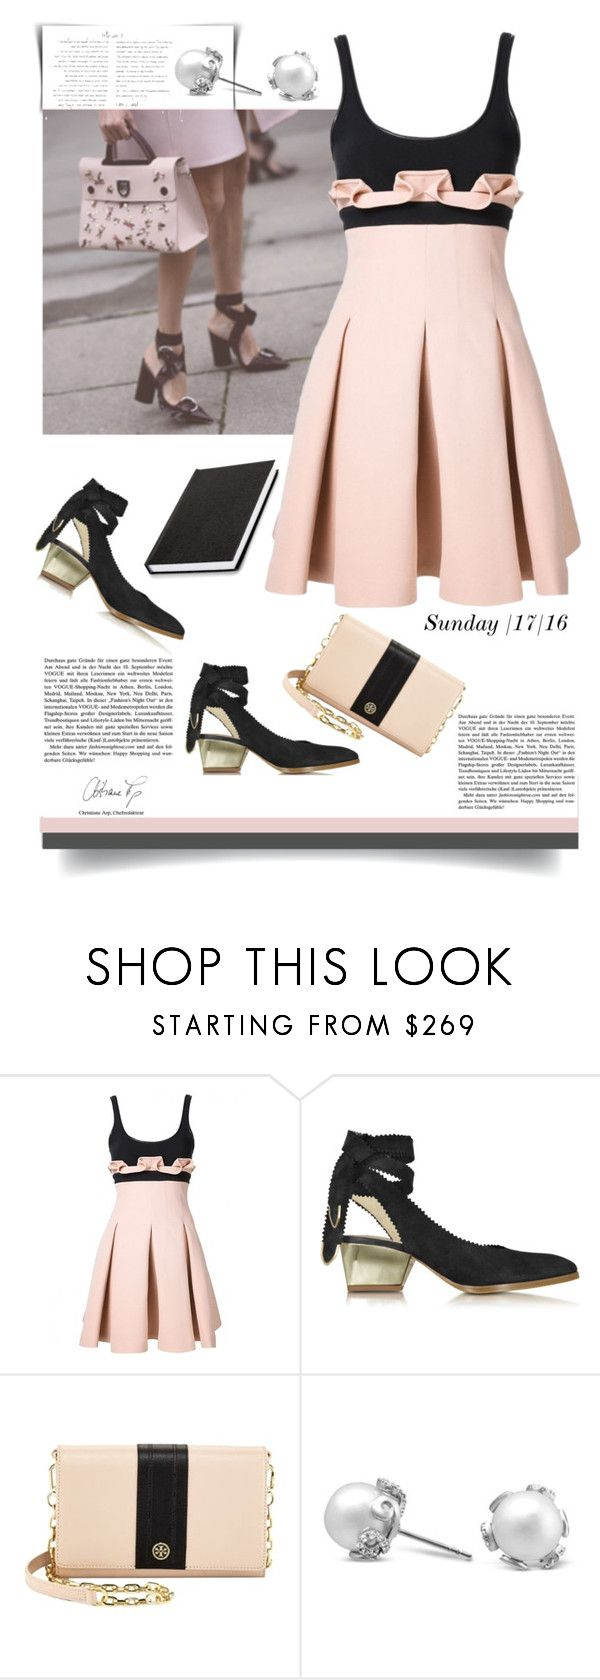 """""""Sunday Style'"""" by dianefantasy ❤ liked on Polyvore featuring David Koma, Zoe Lee, Tory Burch, inspiration, sunday, contestentry and polyvoreeditorial"""